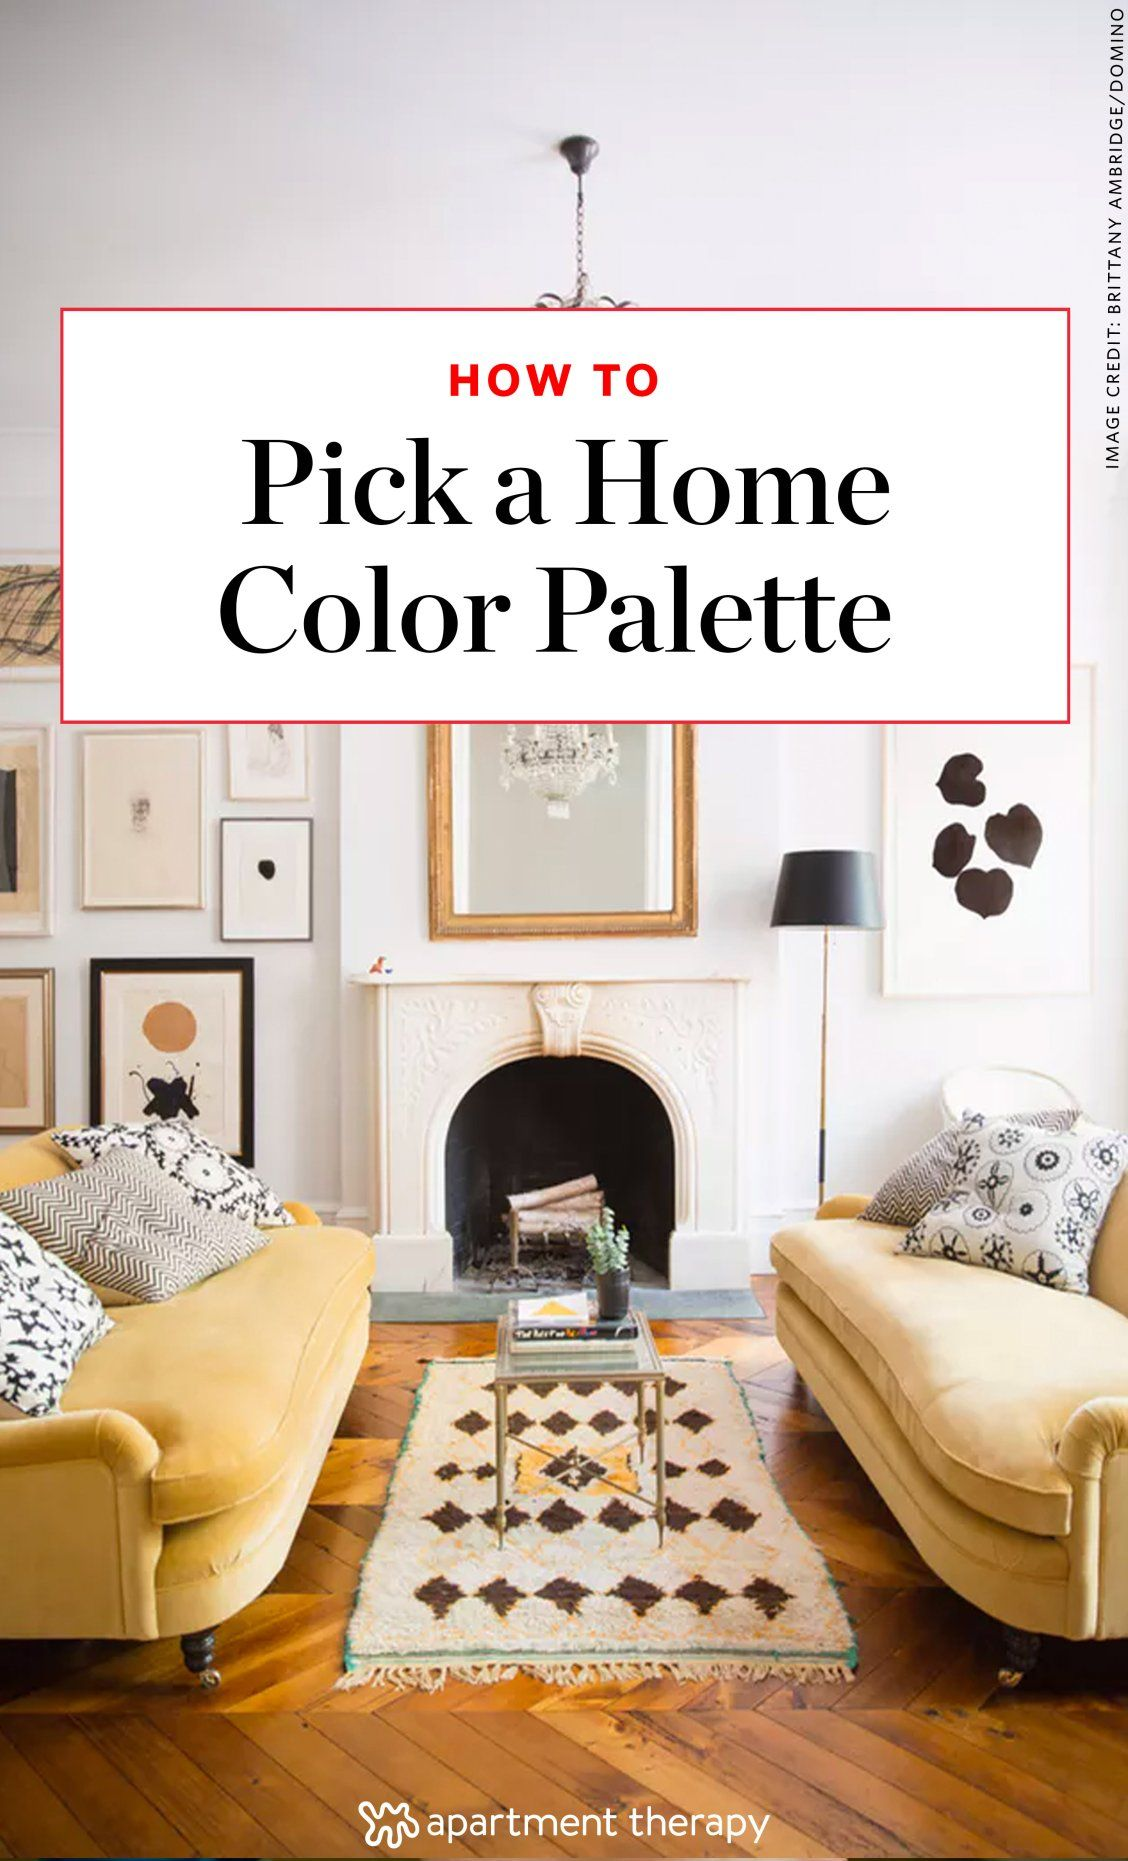 How To Pick A Color Palette That Will Pull Your Home Together Best Home Interior Design Home Interior Design Smart Home Design